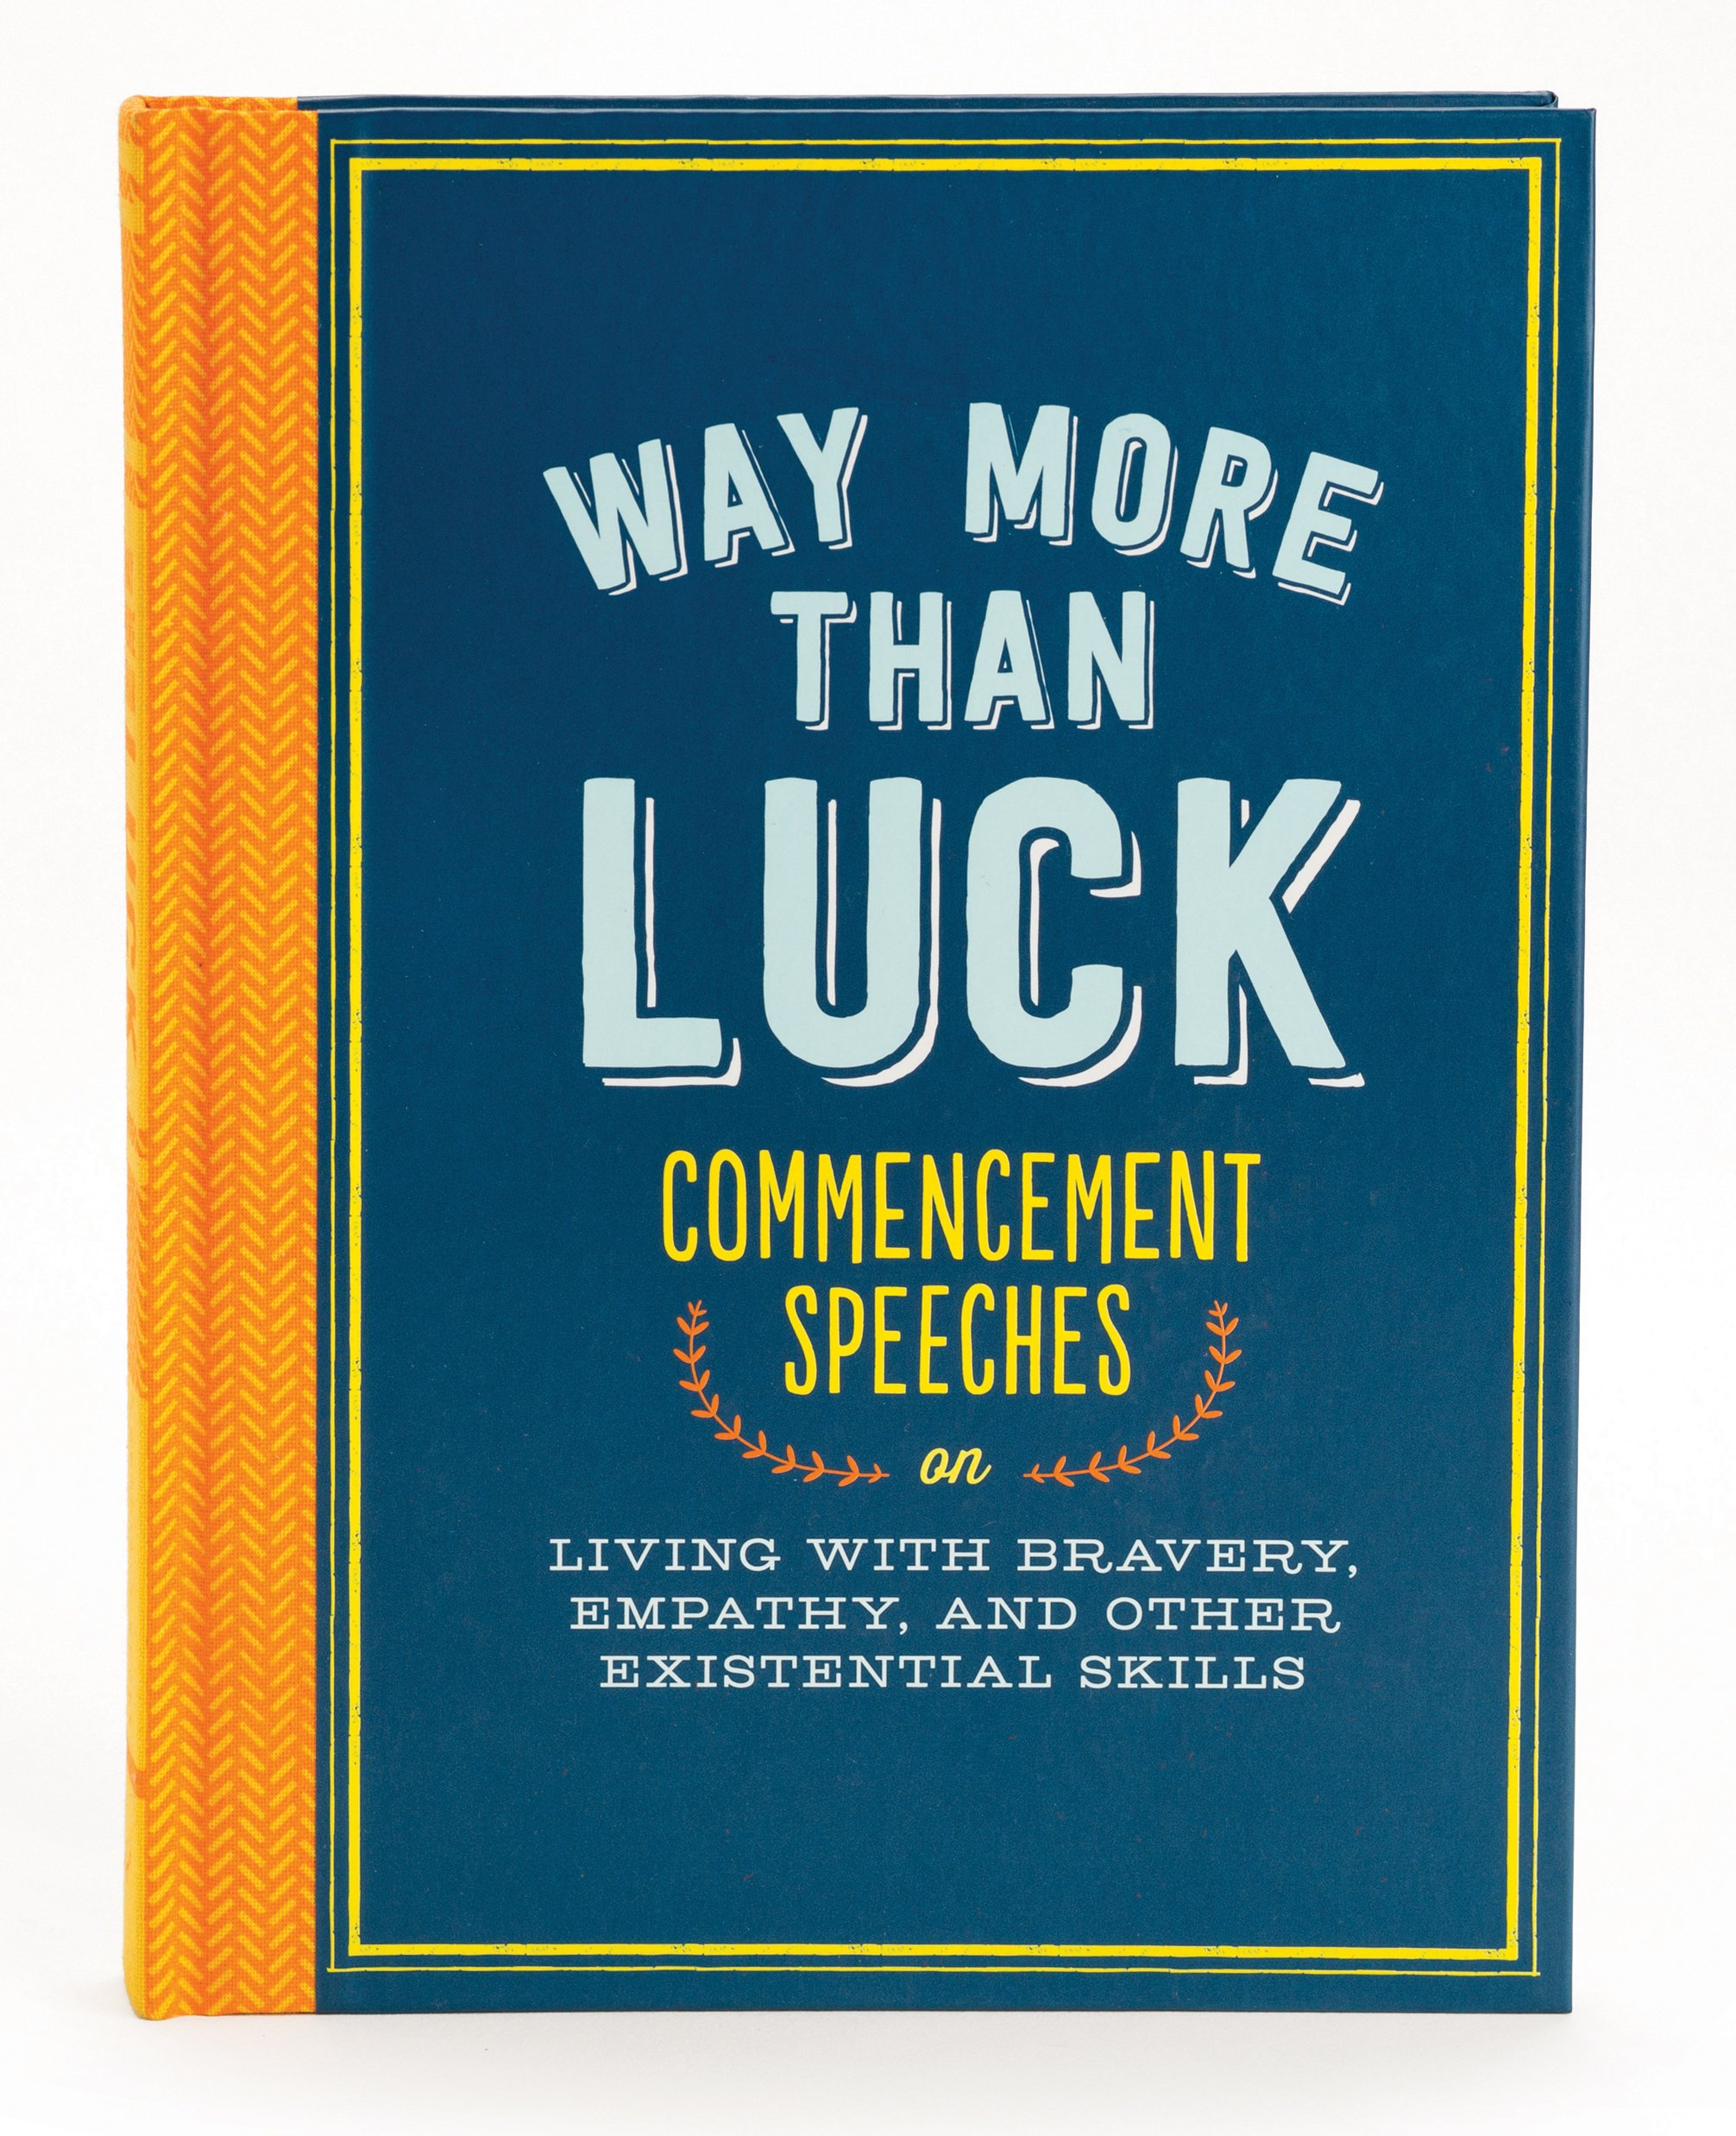 way-more-than-luck-cover